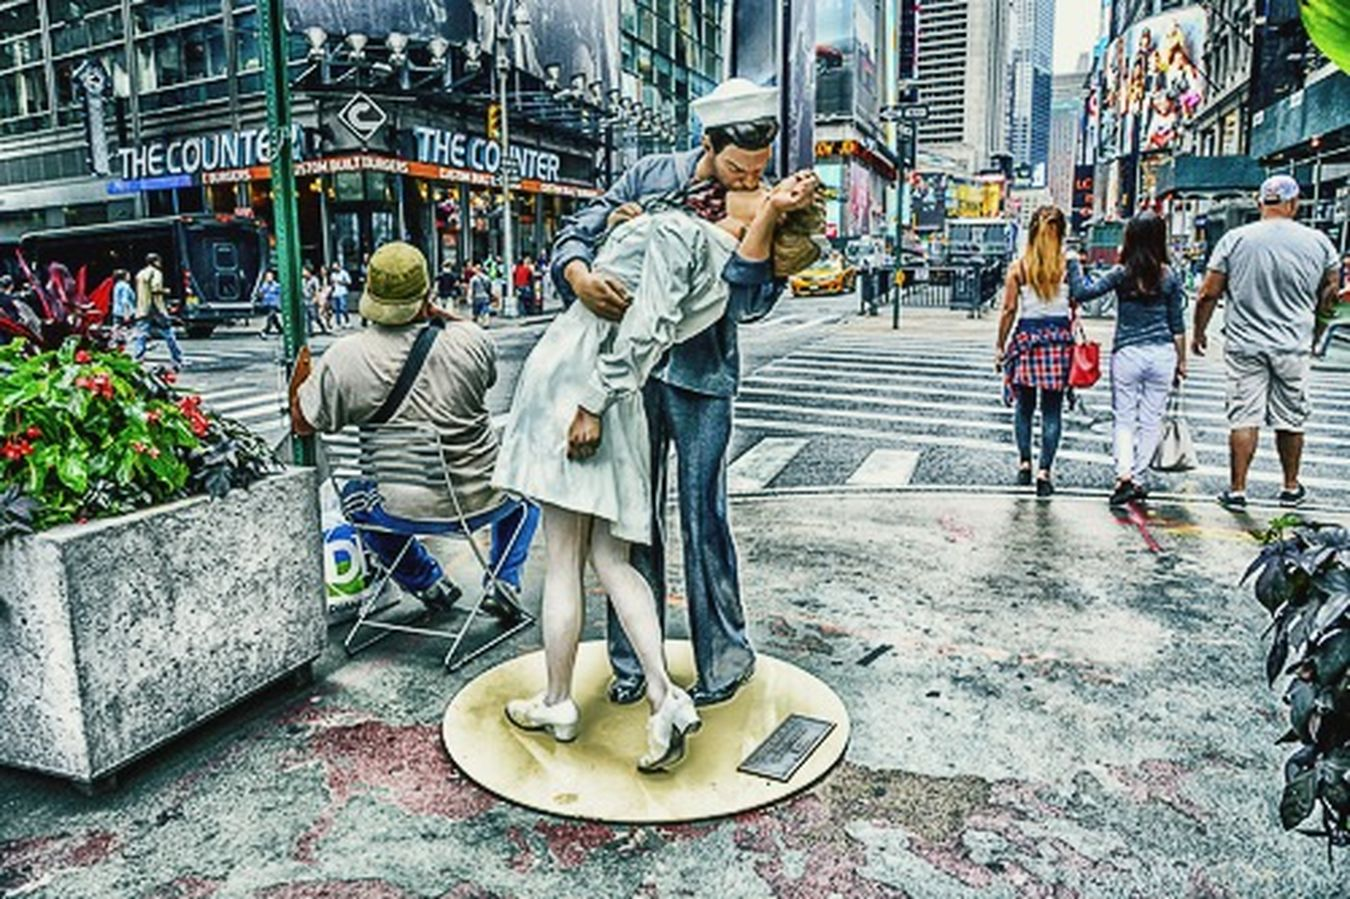 times square NYC SCULPTURE Sculpture Seward Johnson Sailor Boy Kisses Nurse World War 2 Memorial Urban Life Urban Lifestyle UrbanART WW2 Memorial